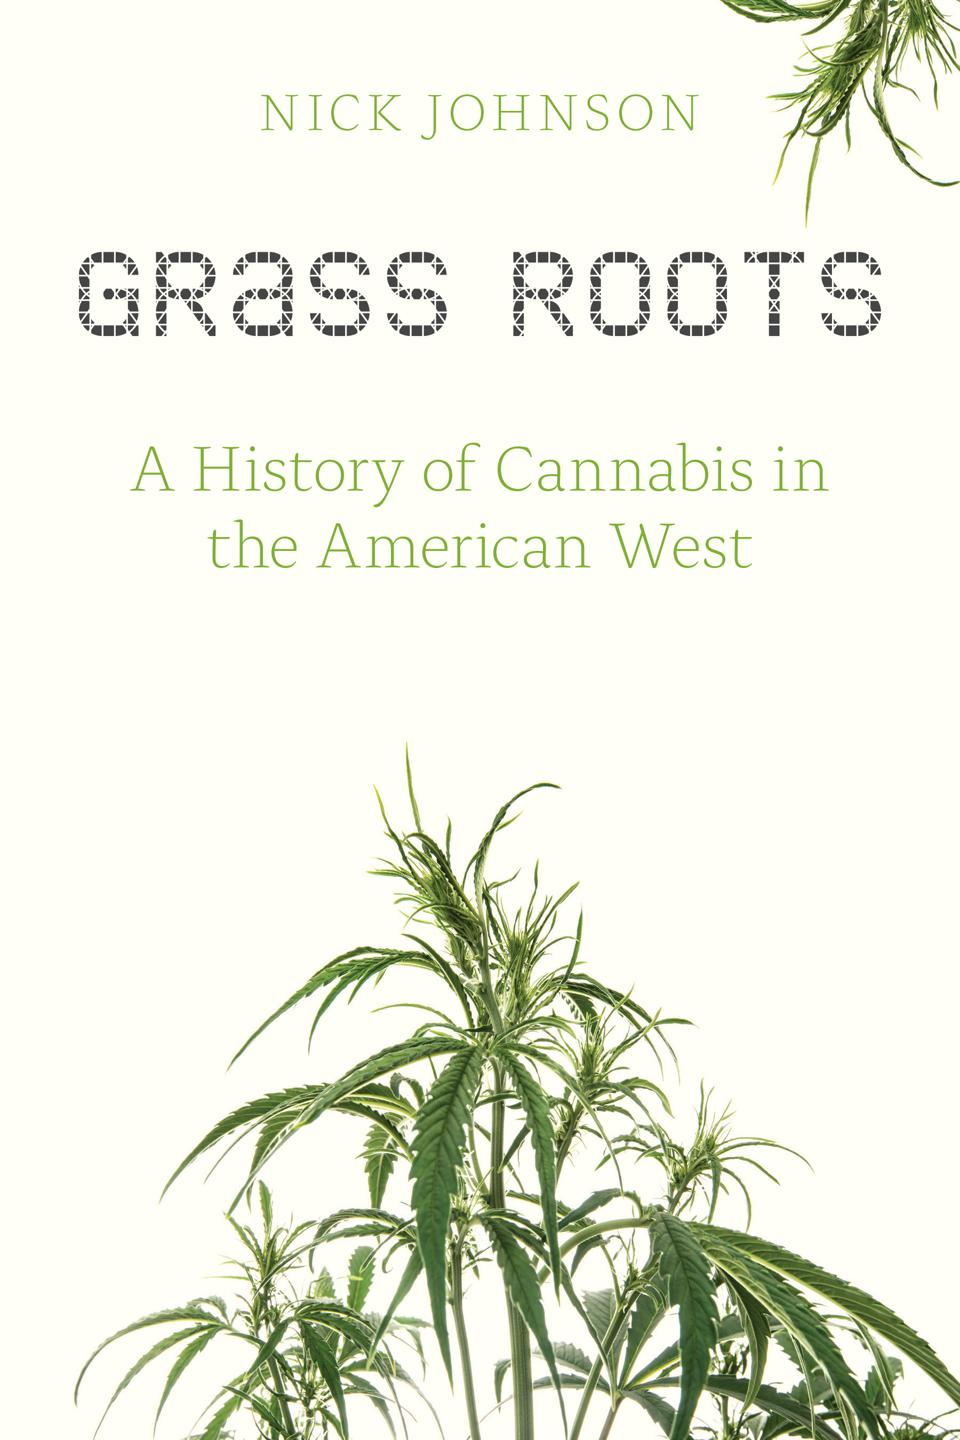 Grass Roots, Nick Johnson, cannabis history, cannabis books, marijuana books